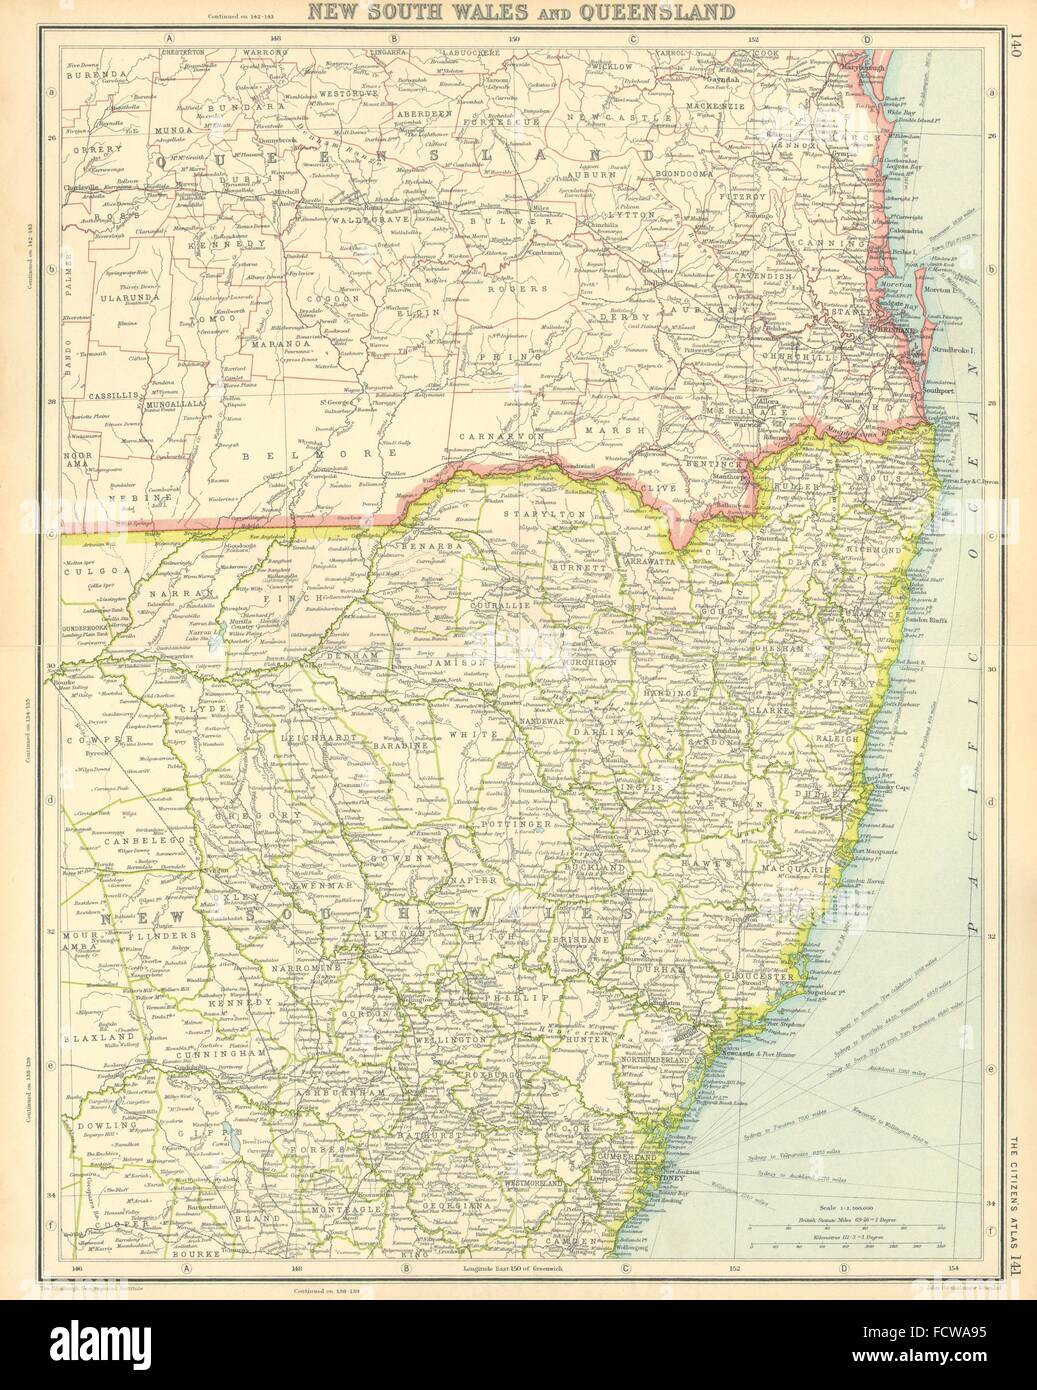 australia east coast new south wales and queensland sydney brisbane 1924 map